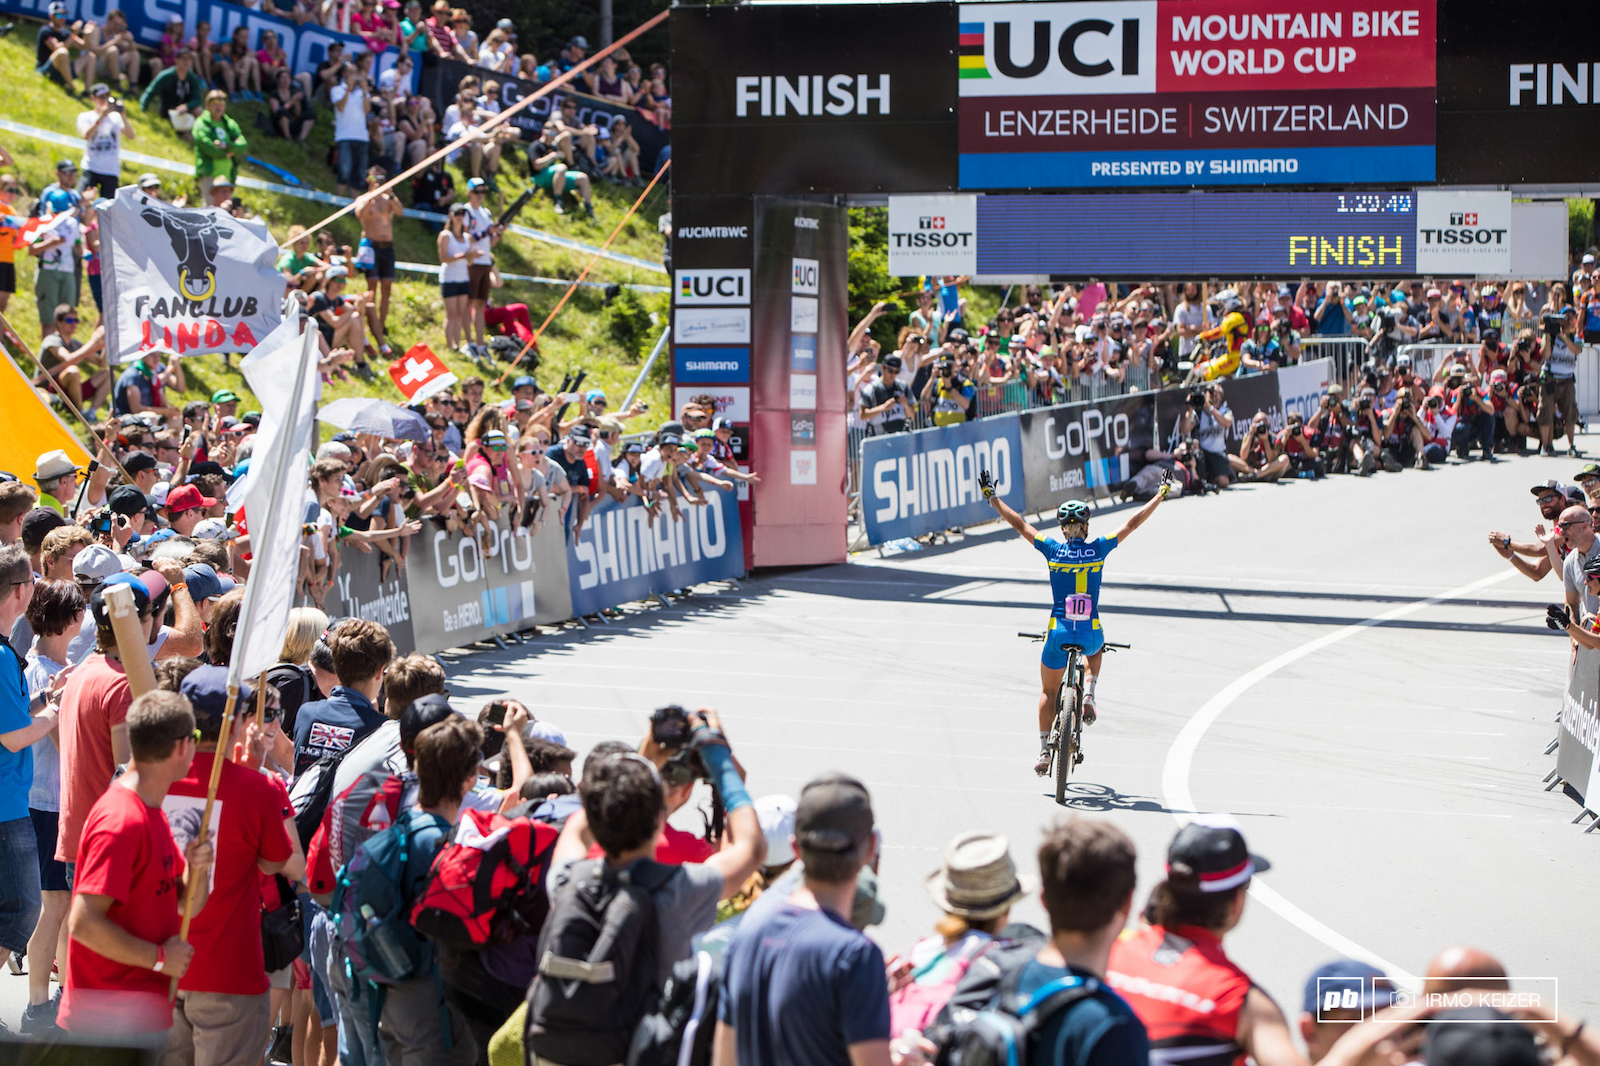 World Champion in the U23 category Jenny Rissveds taking the win in the elite women s field today in Lenzerheide.